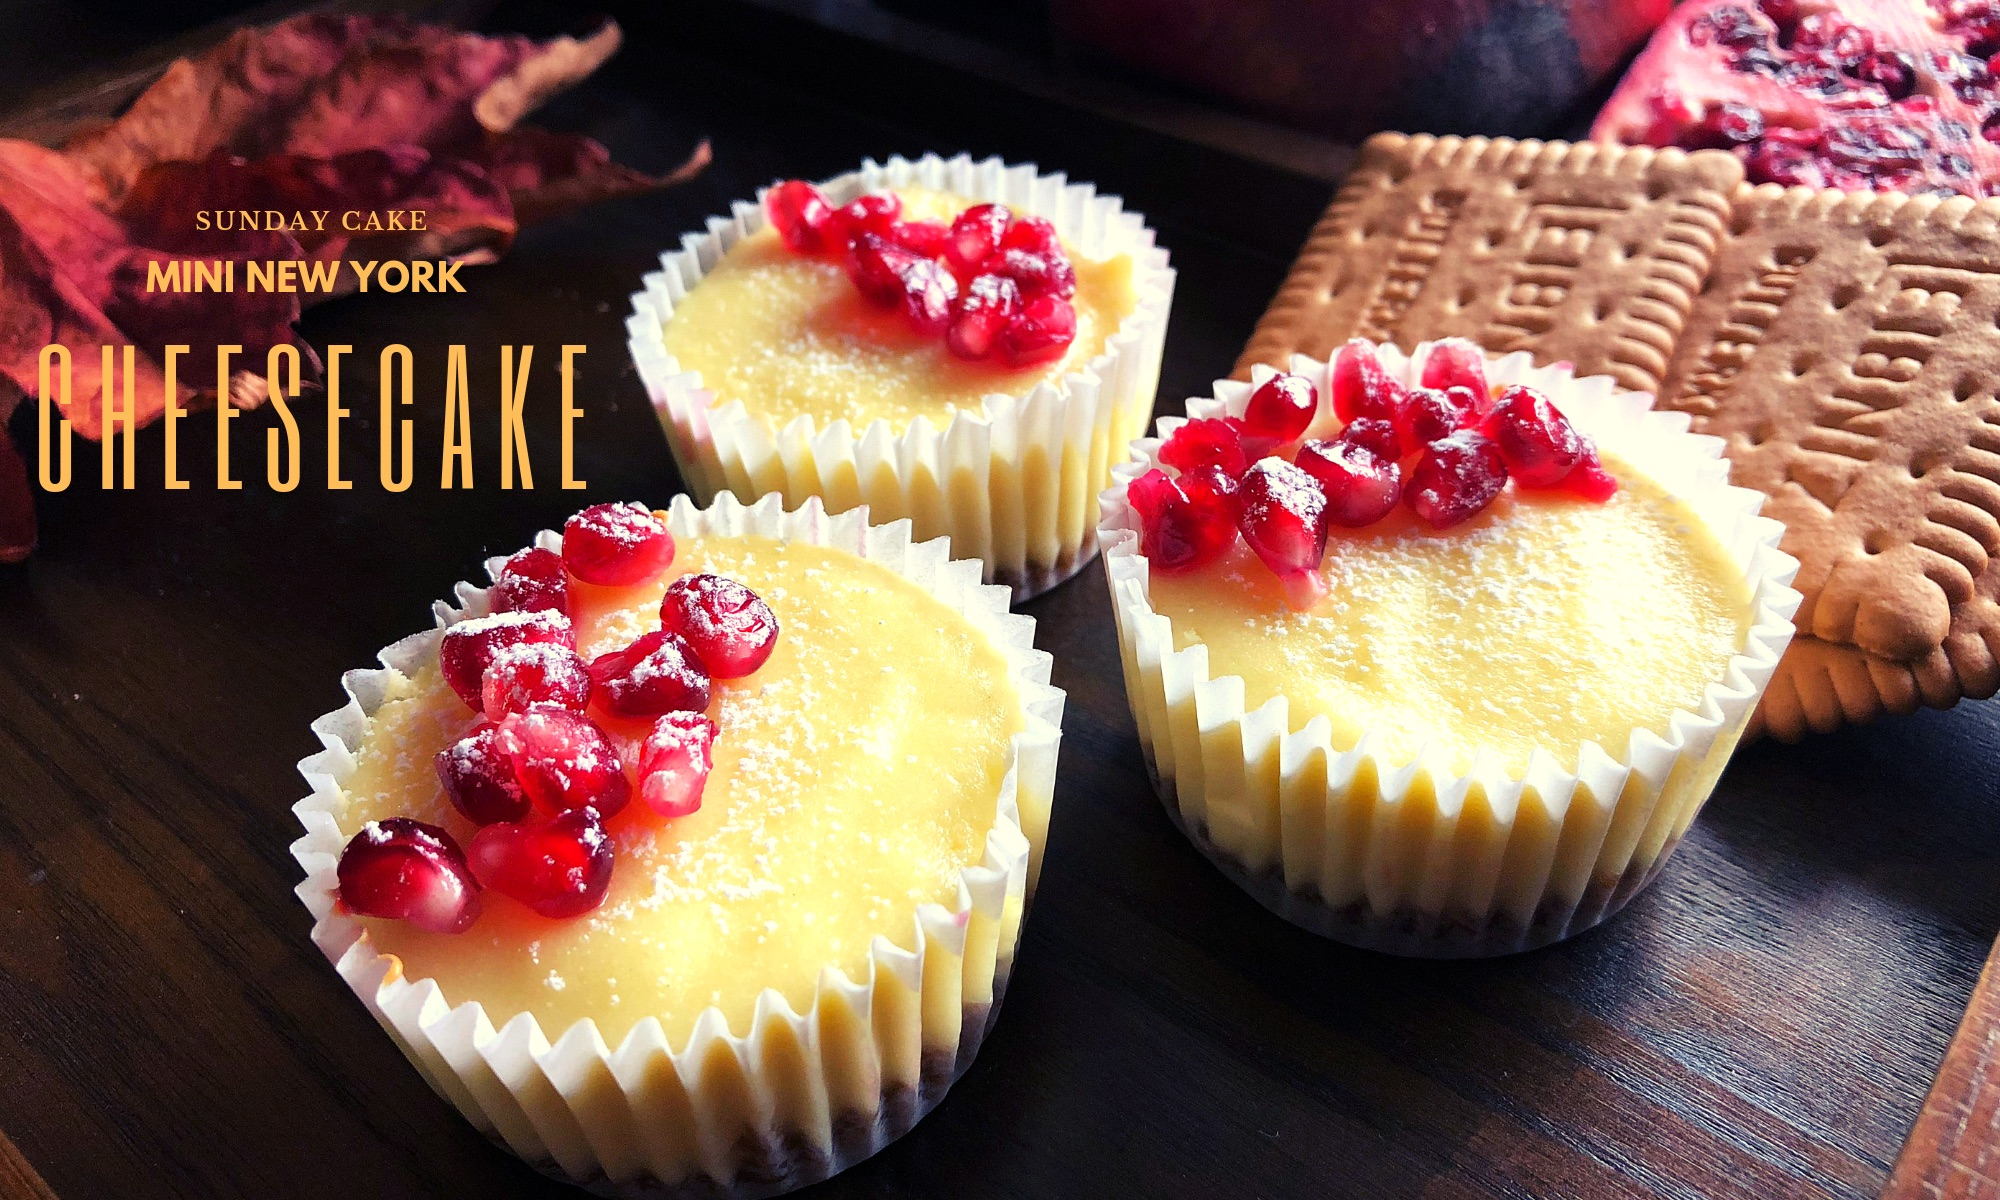 Mini-New York Cheesecake